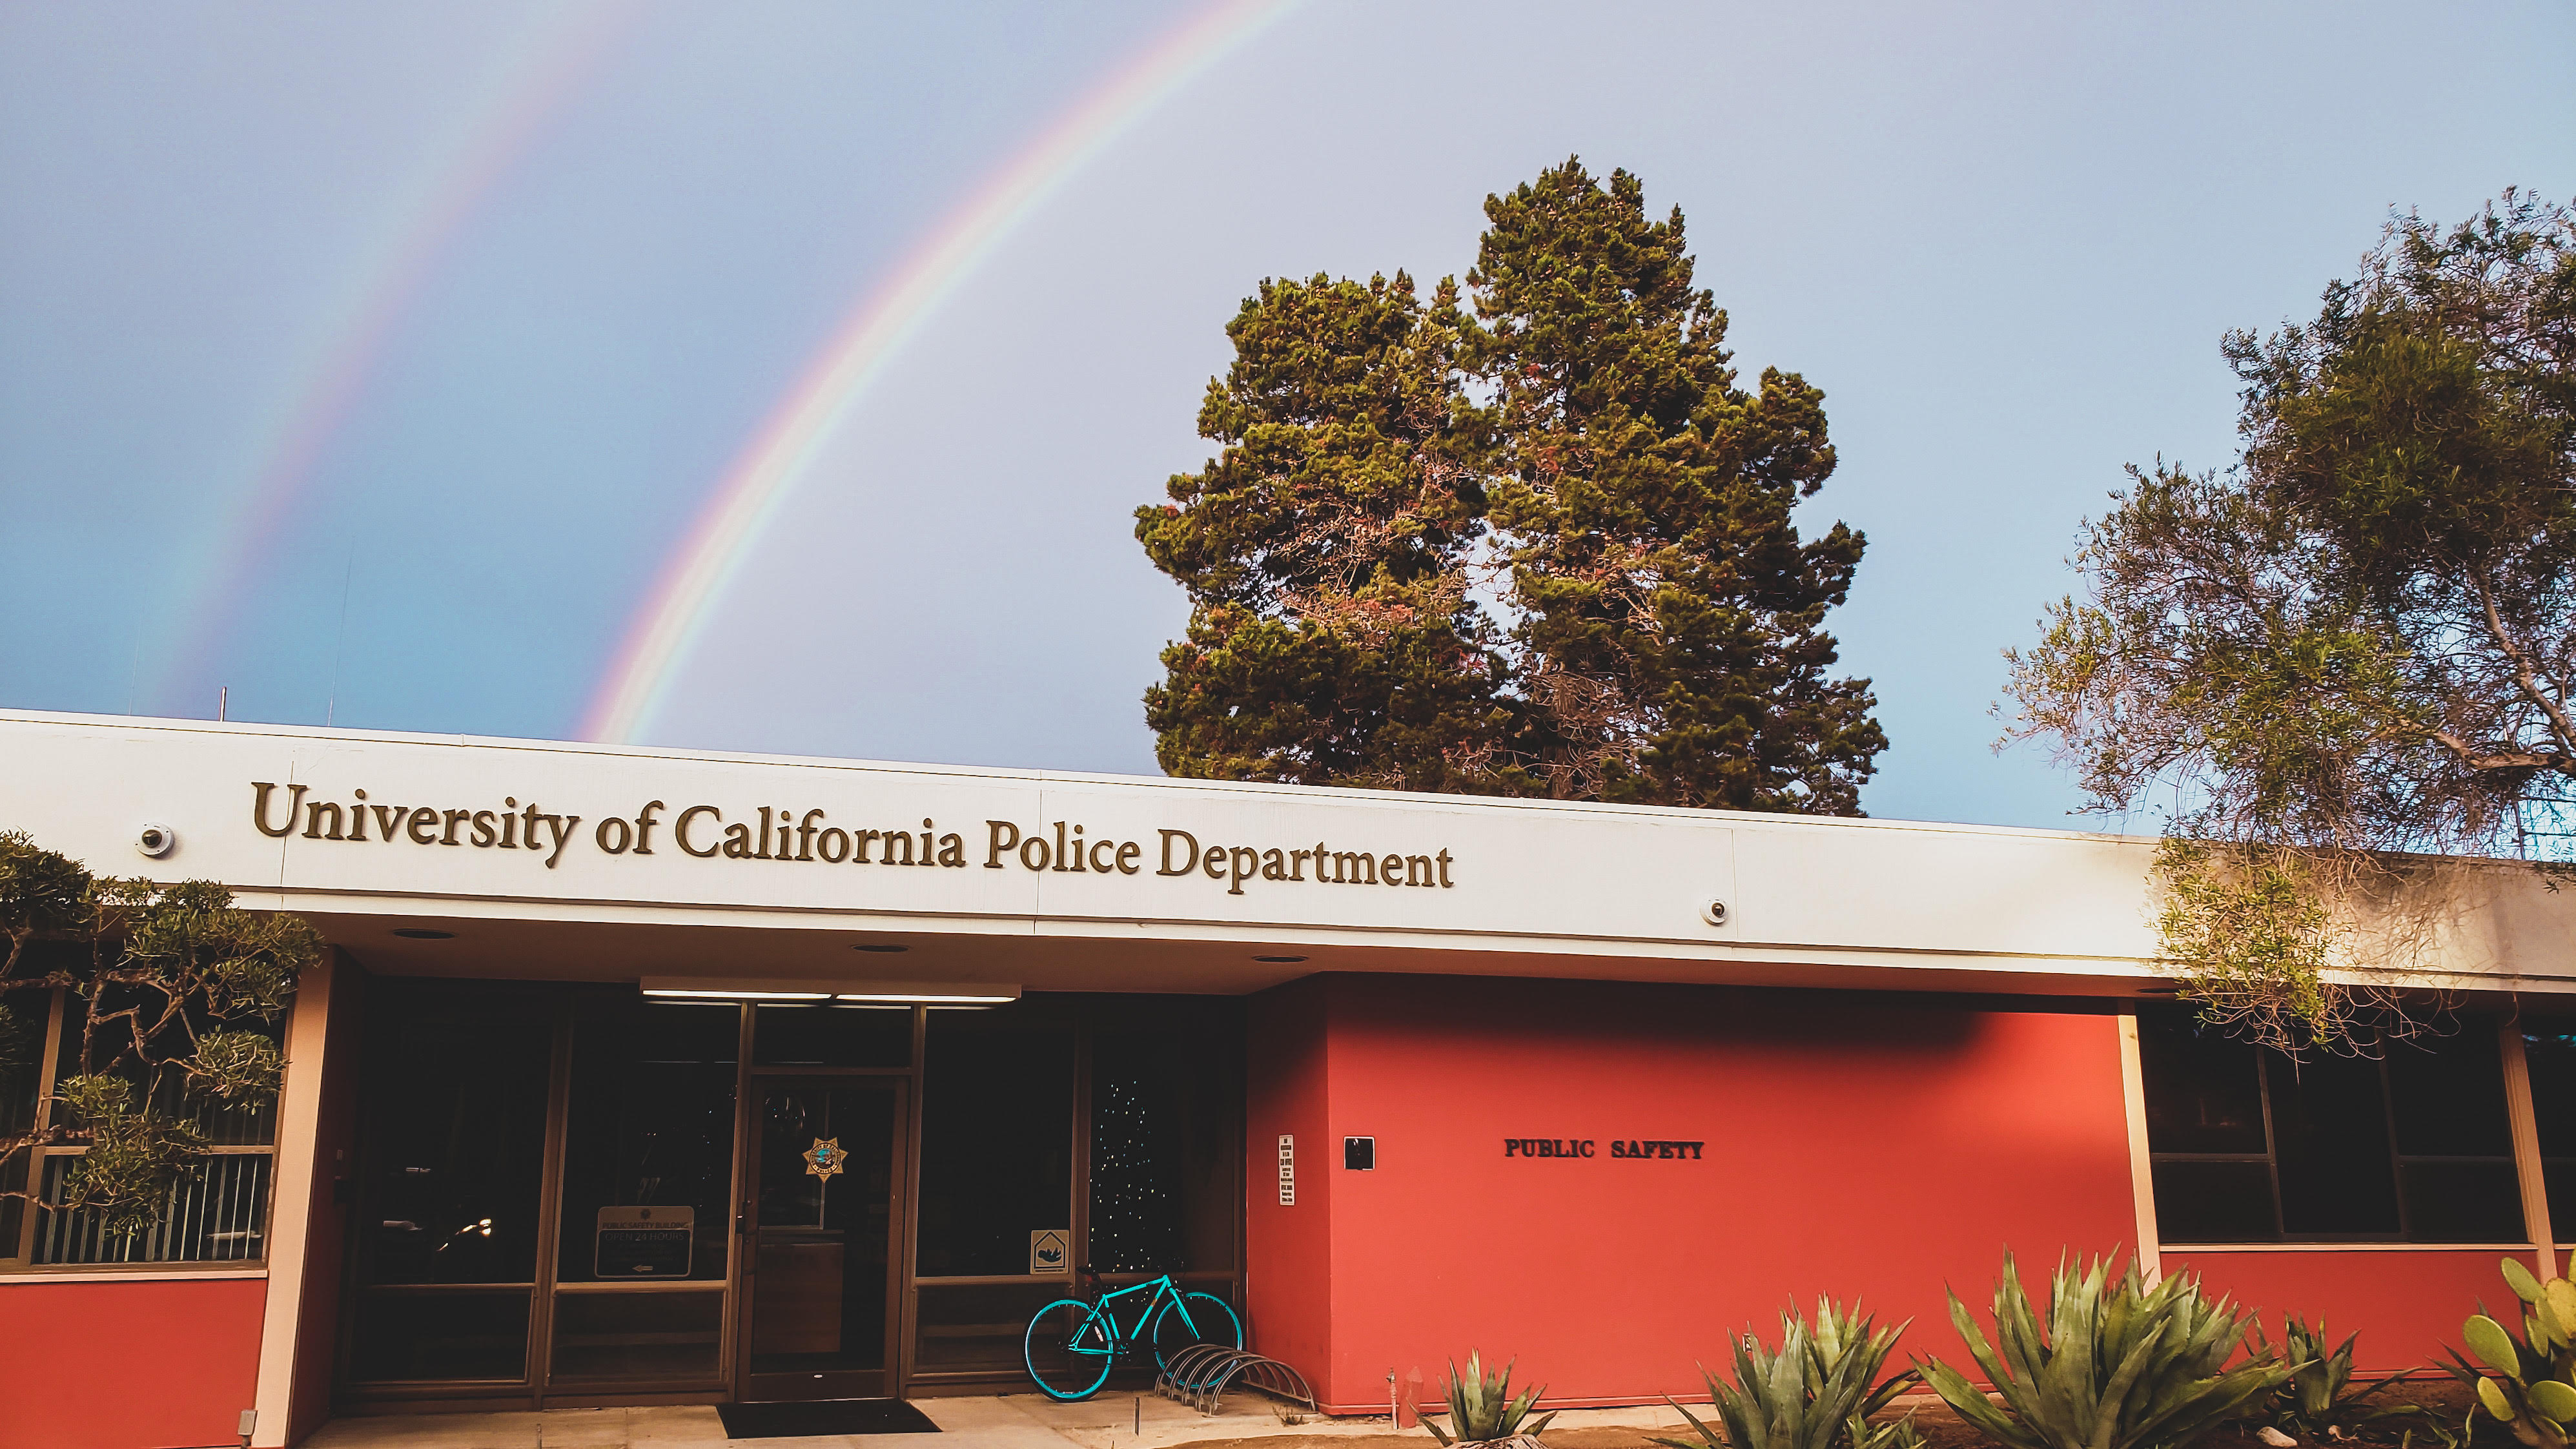 UCSB Police Station with rainbow in background